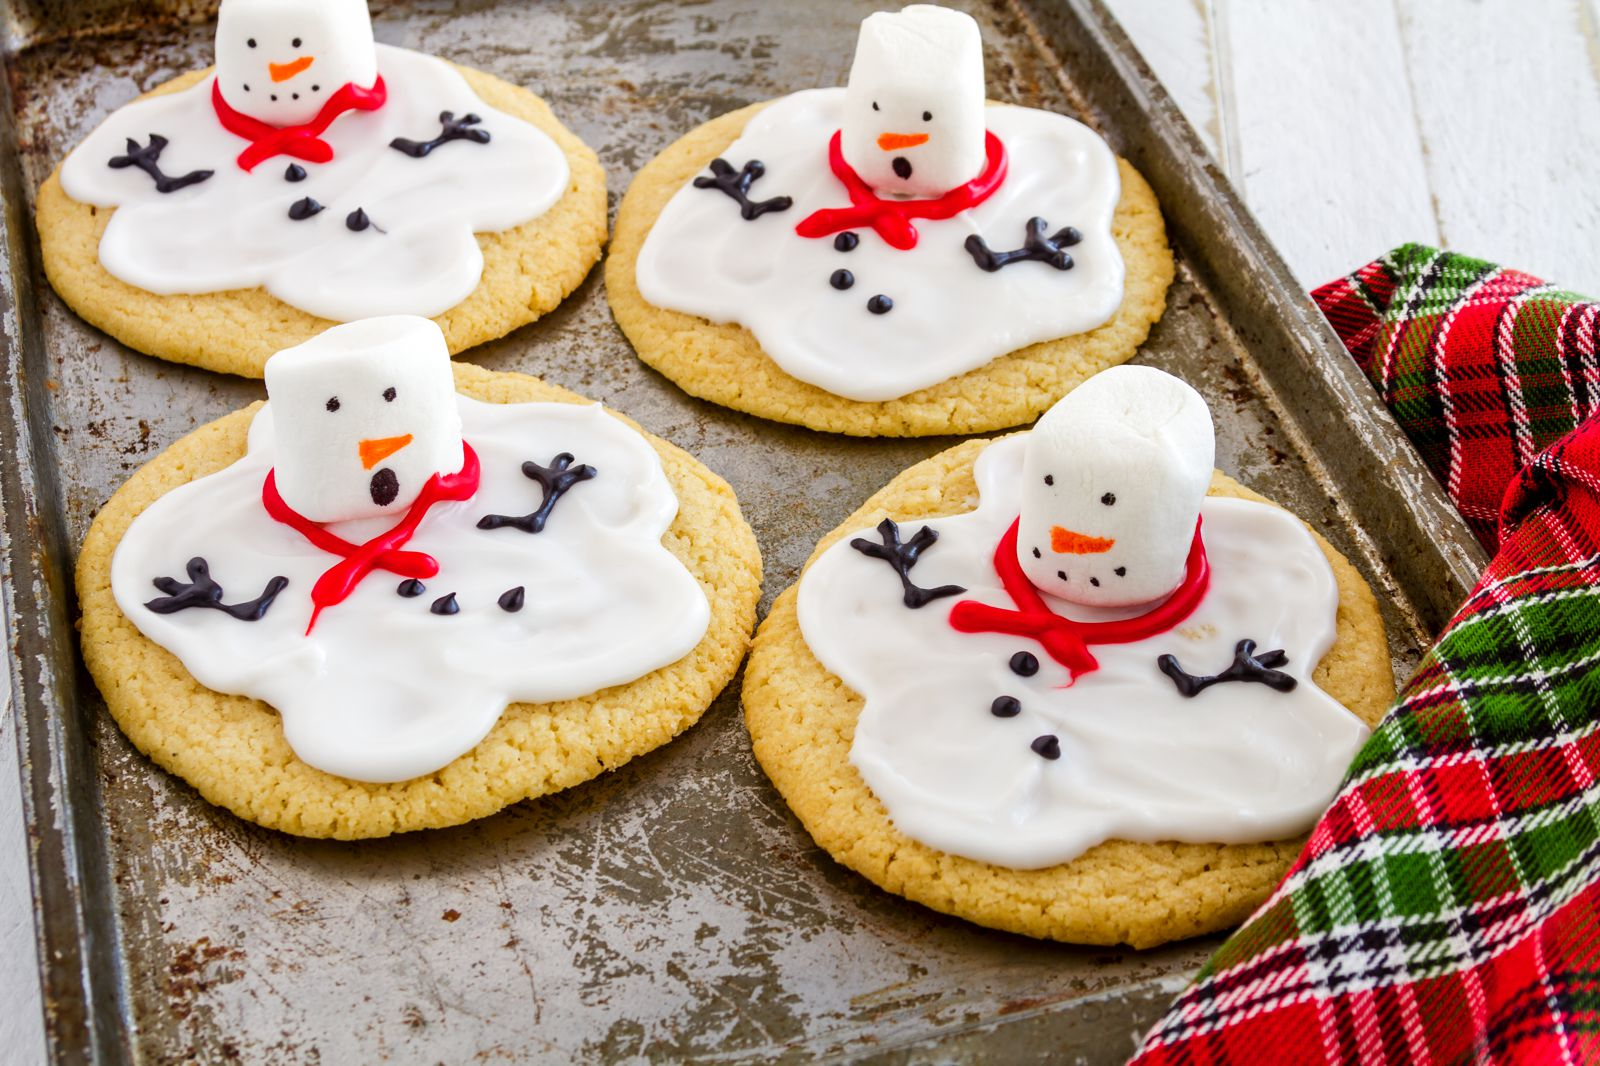 10 Fun, Easy And Delicious Christmas Treats To Make - Hand Luggage ...